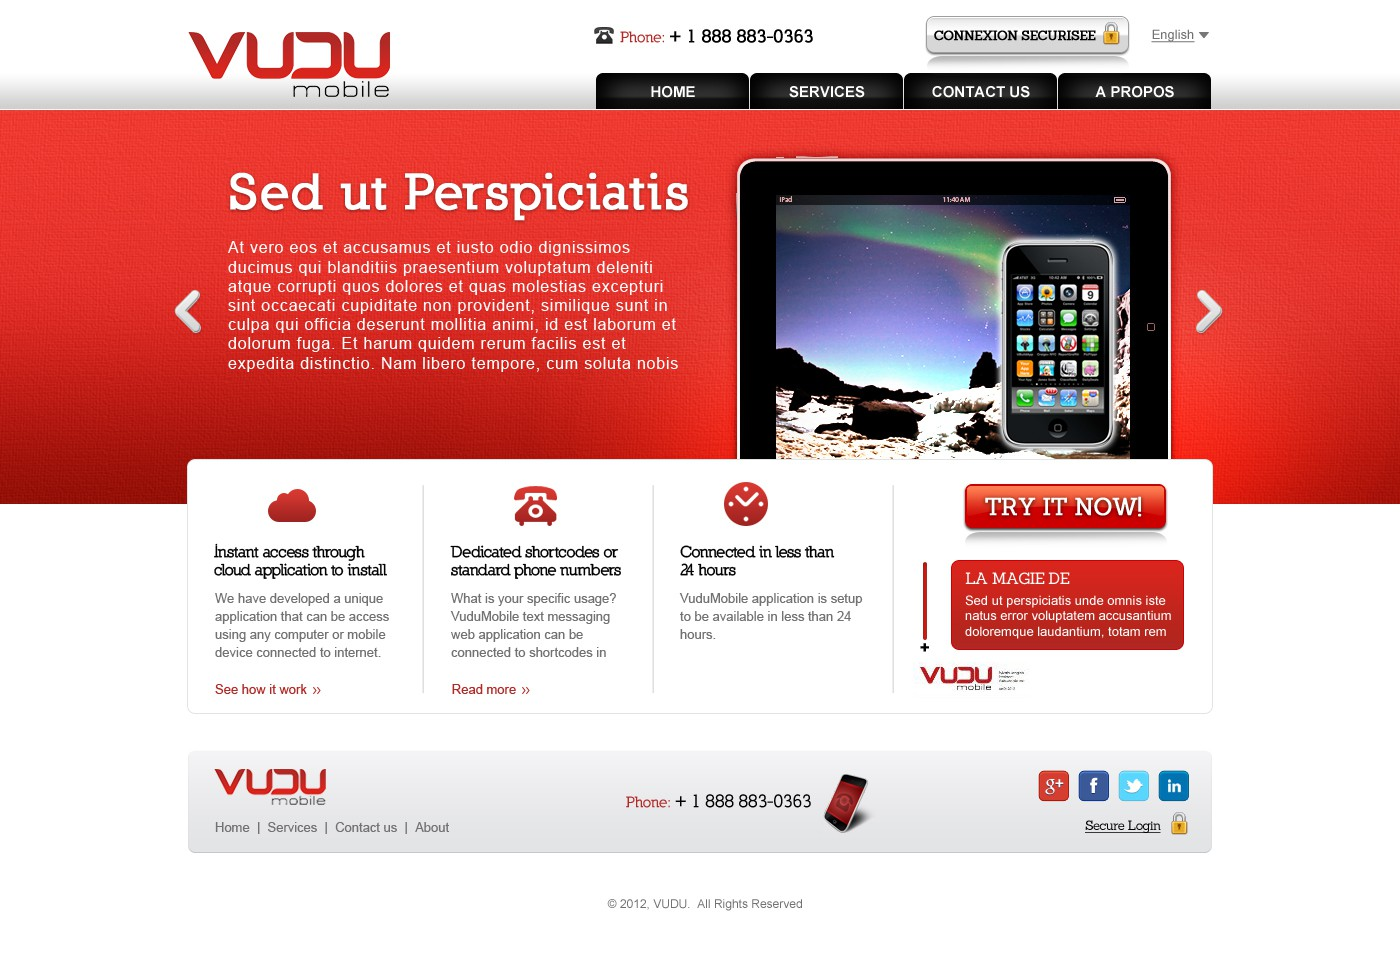 New website design wanted for VuduMobile